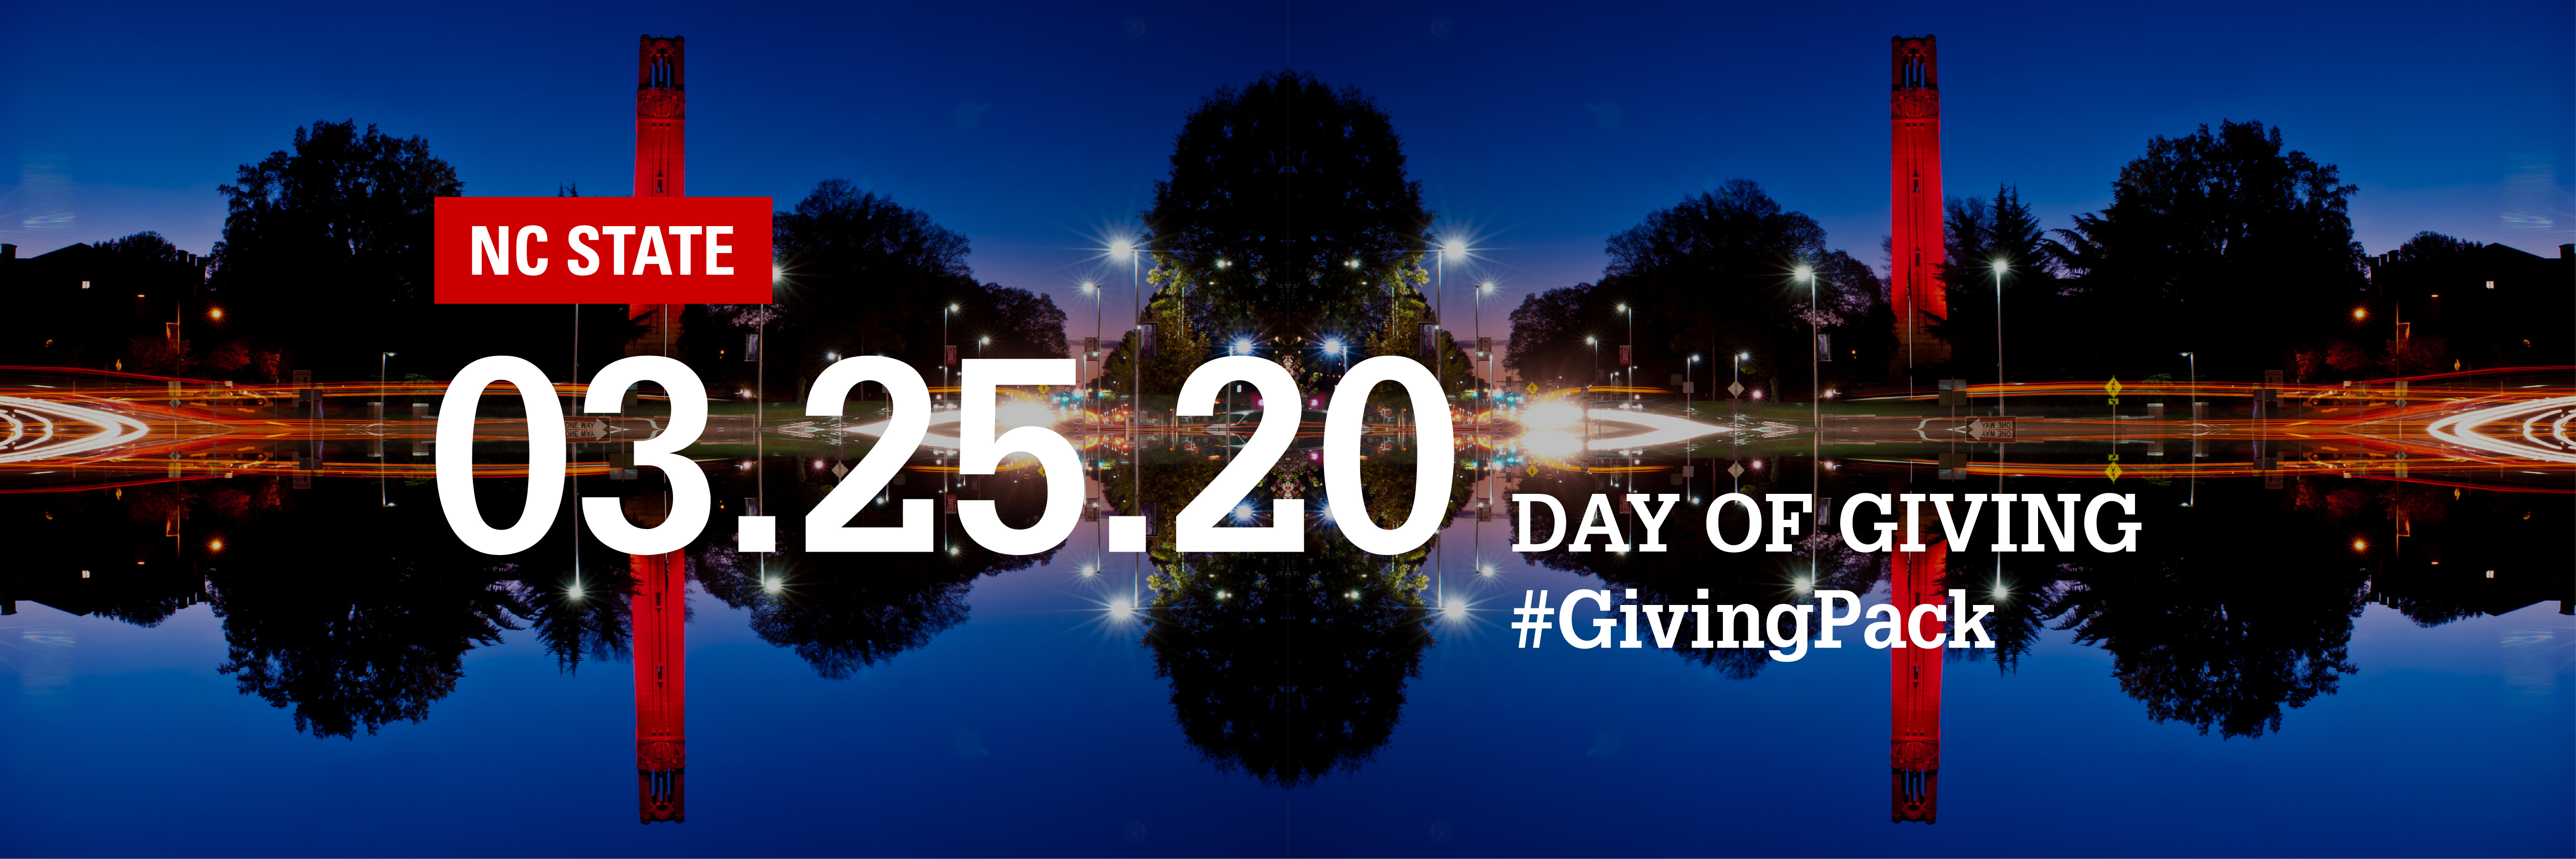 Twitter cover photo with image of the belltower at night from the roundabout and text reading NC State 03.25.20 Day of Giving Hashtag Giving Pack